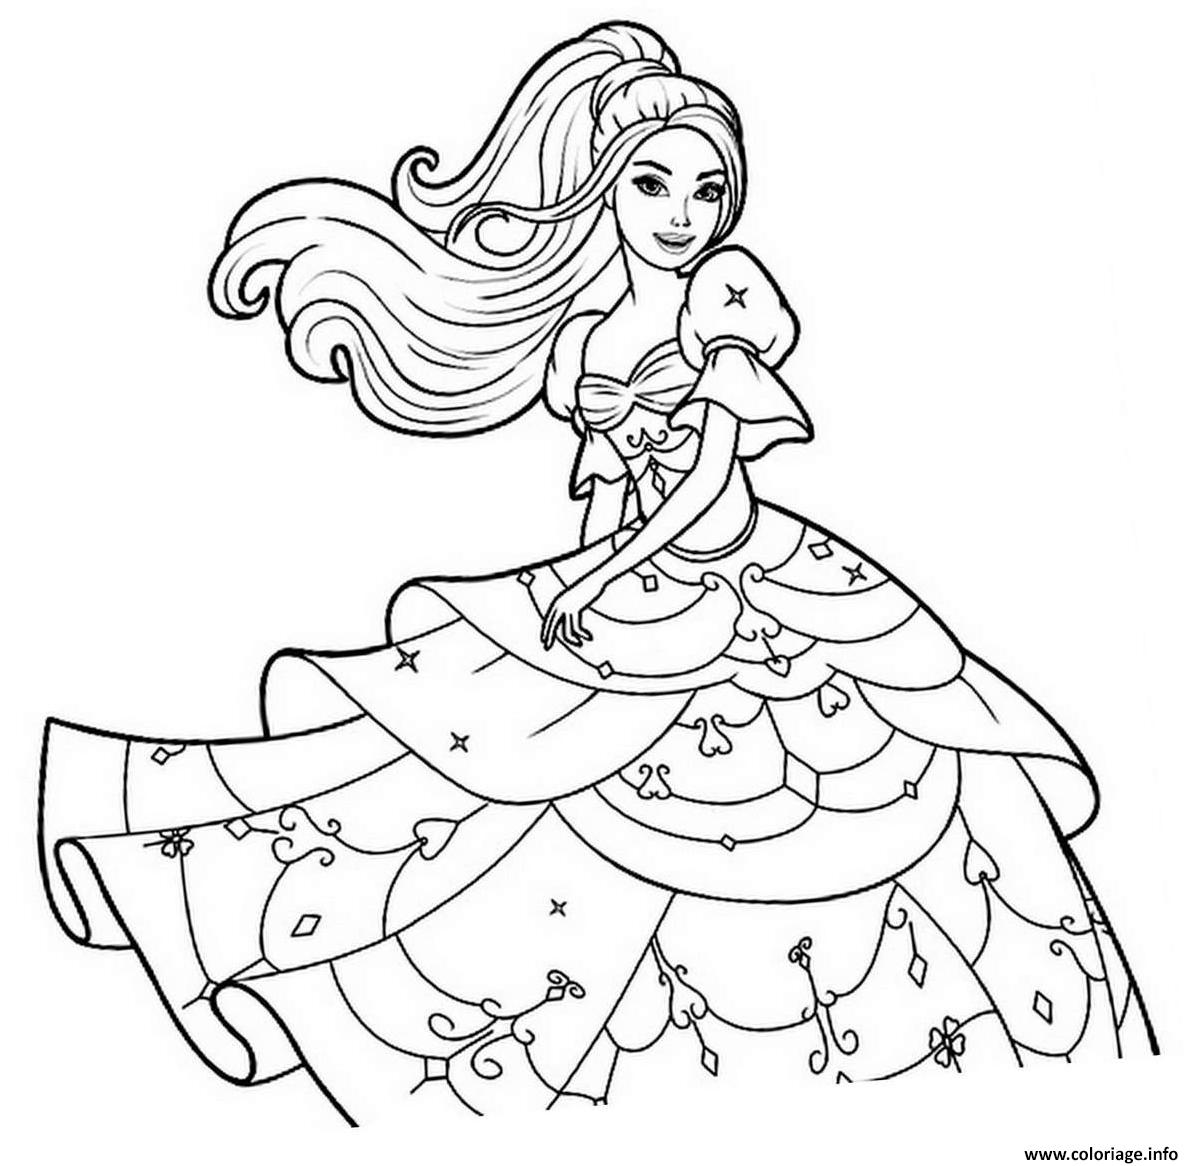 Coloriage disney princesse 148 dessin - Coloriage disney ...